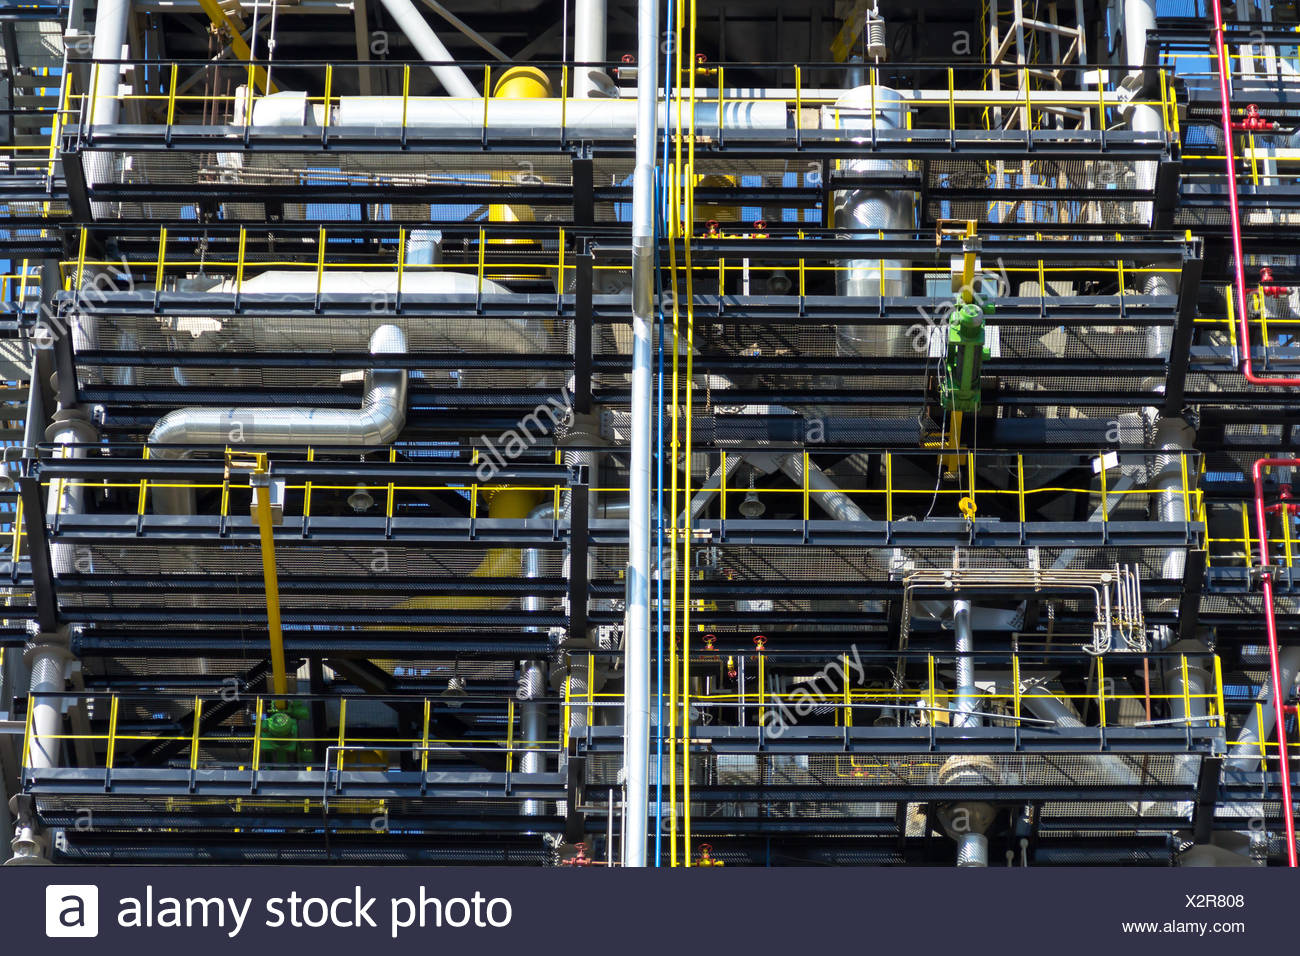 Production and storage of oil products - Stock Image